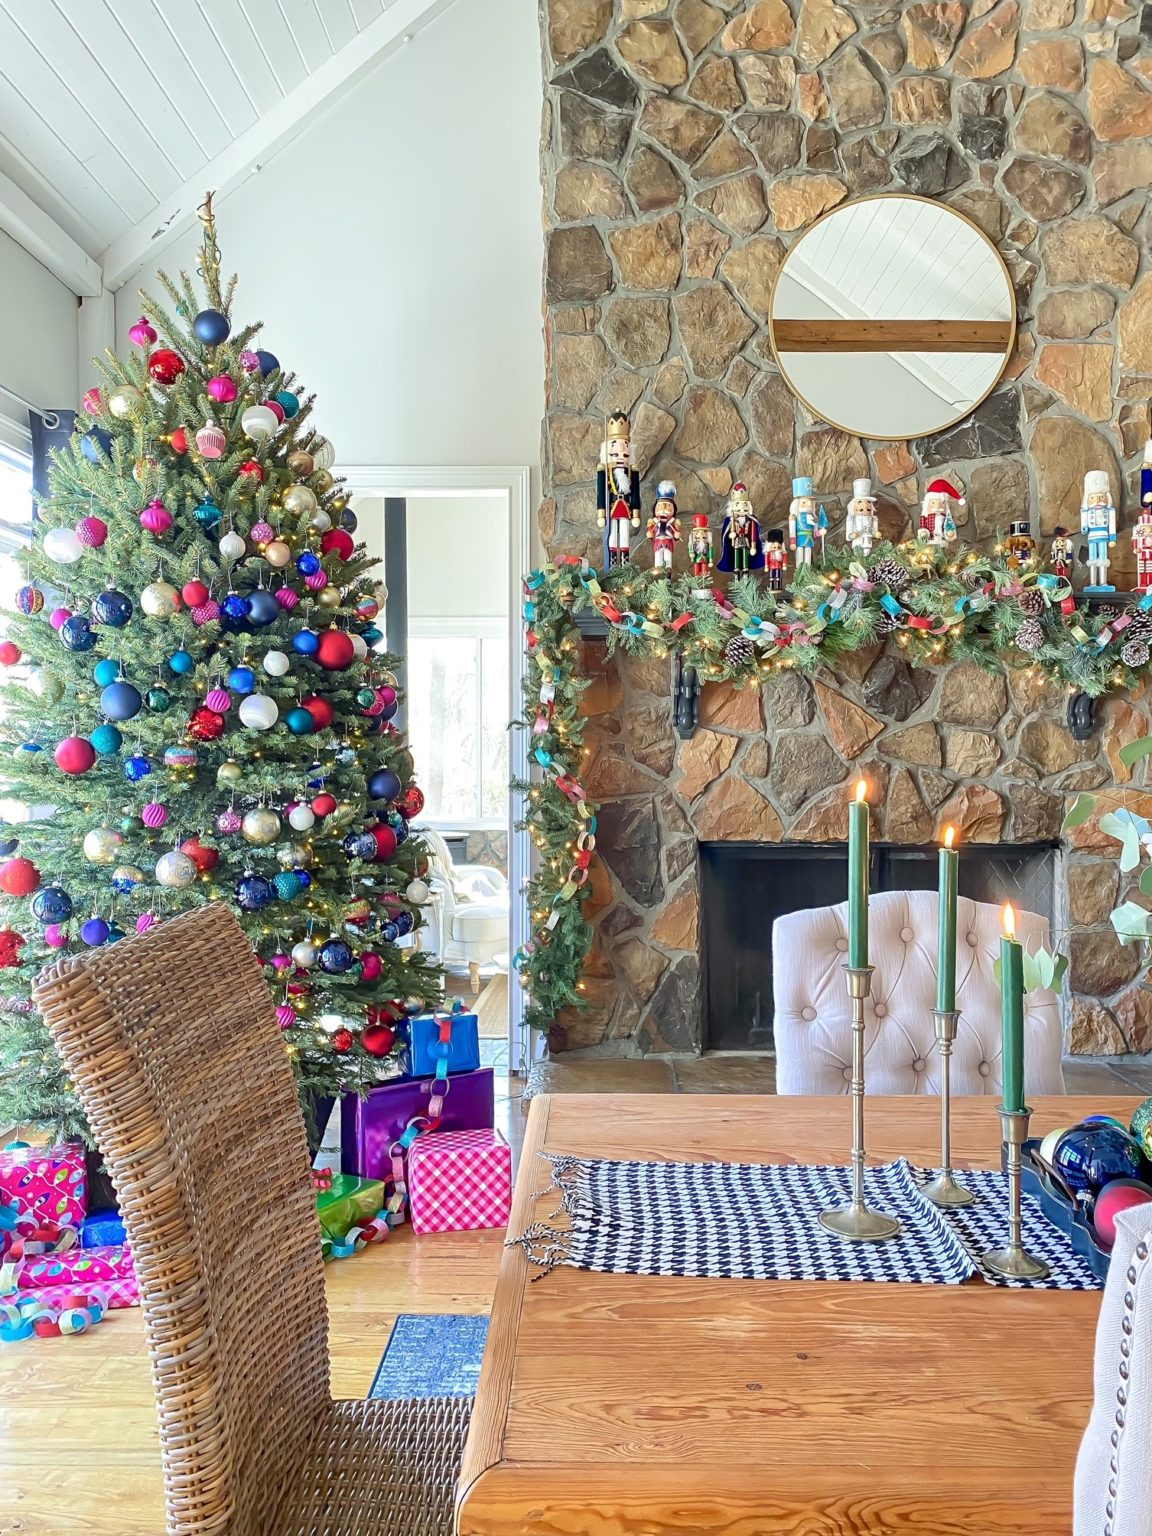 Love this colorful Christmas tree and mantel #colorfulchristmas #christmastree #nutcrackers #christmasmantel